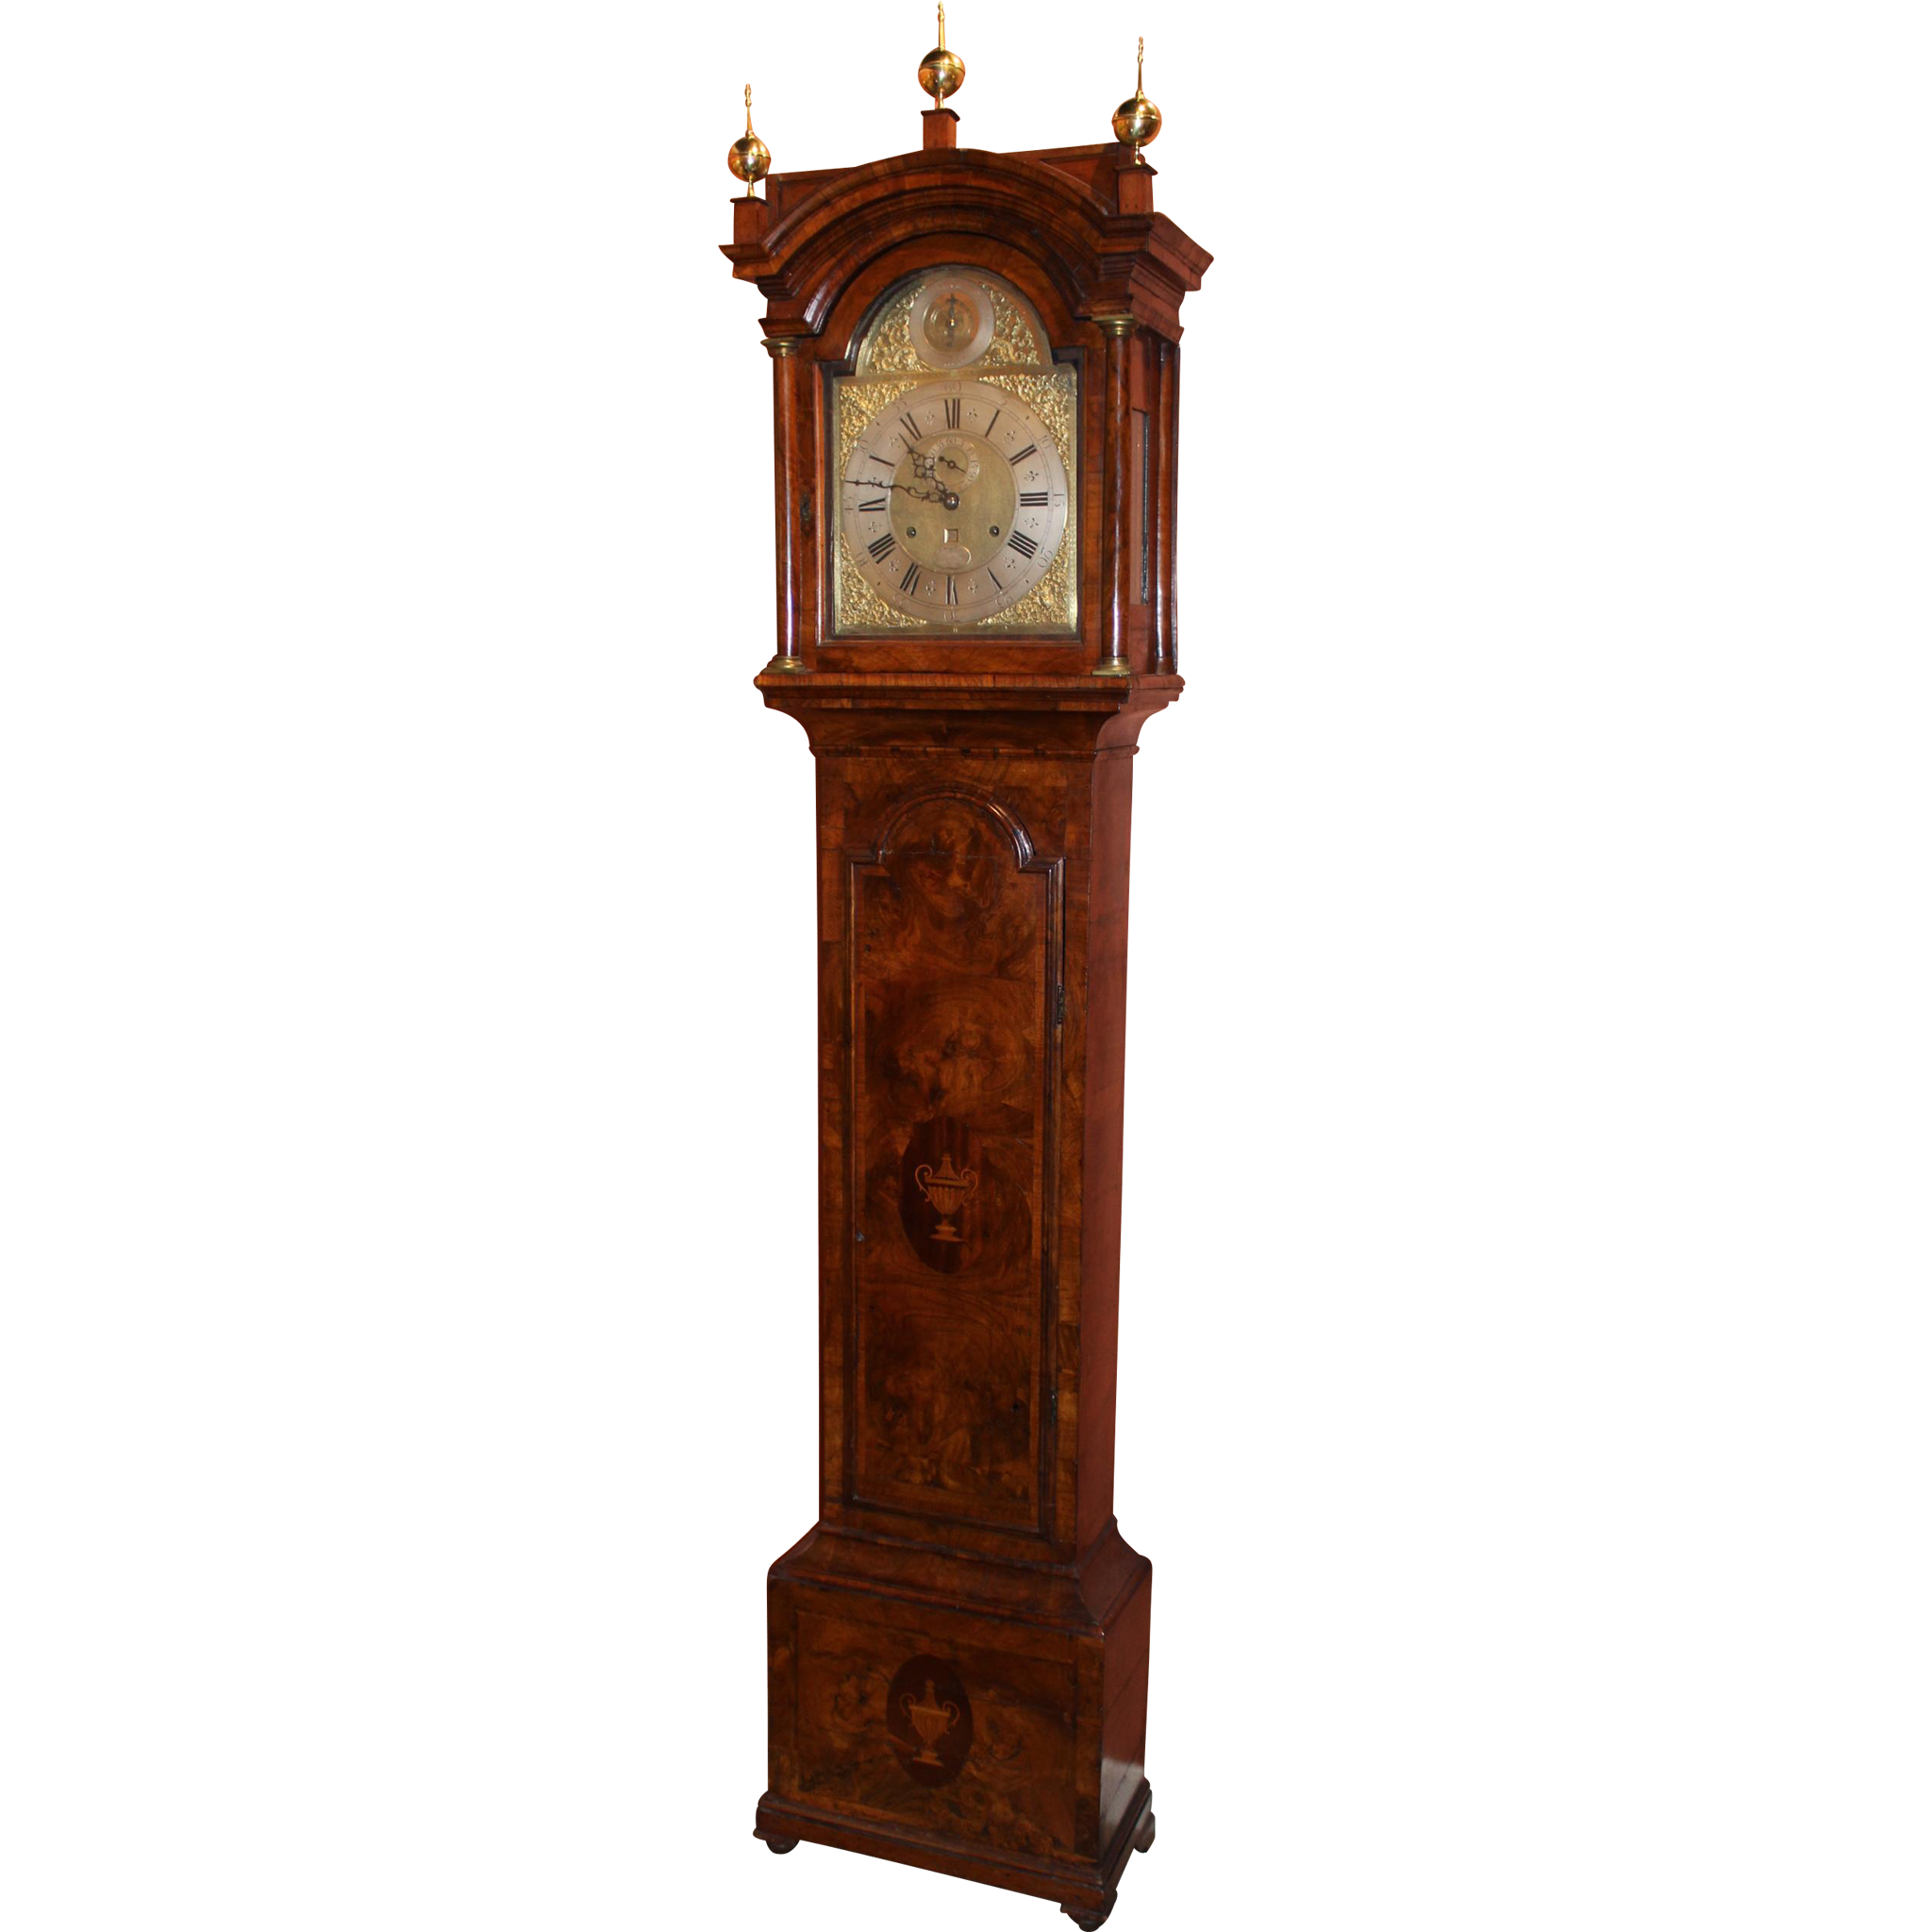 William Webster English Tall Case Clock with Rare 30 Day Movement, circa 1740